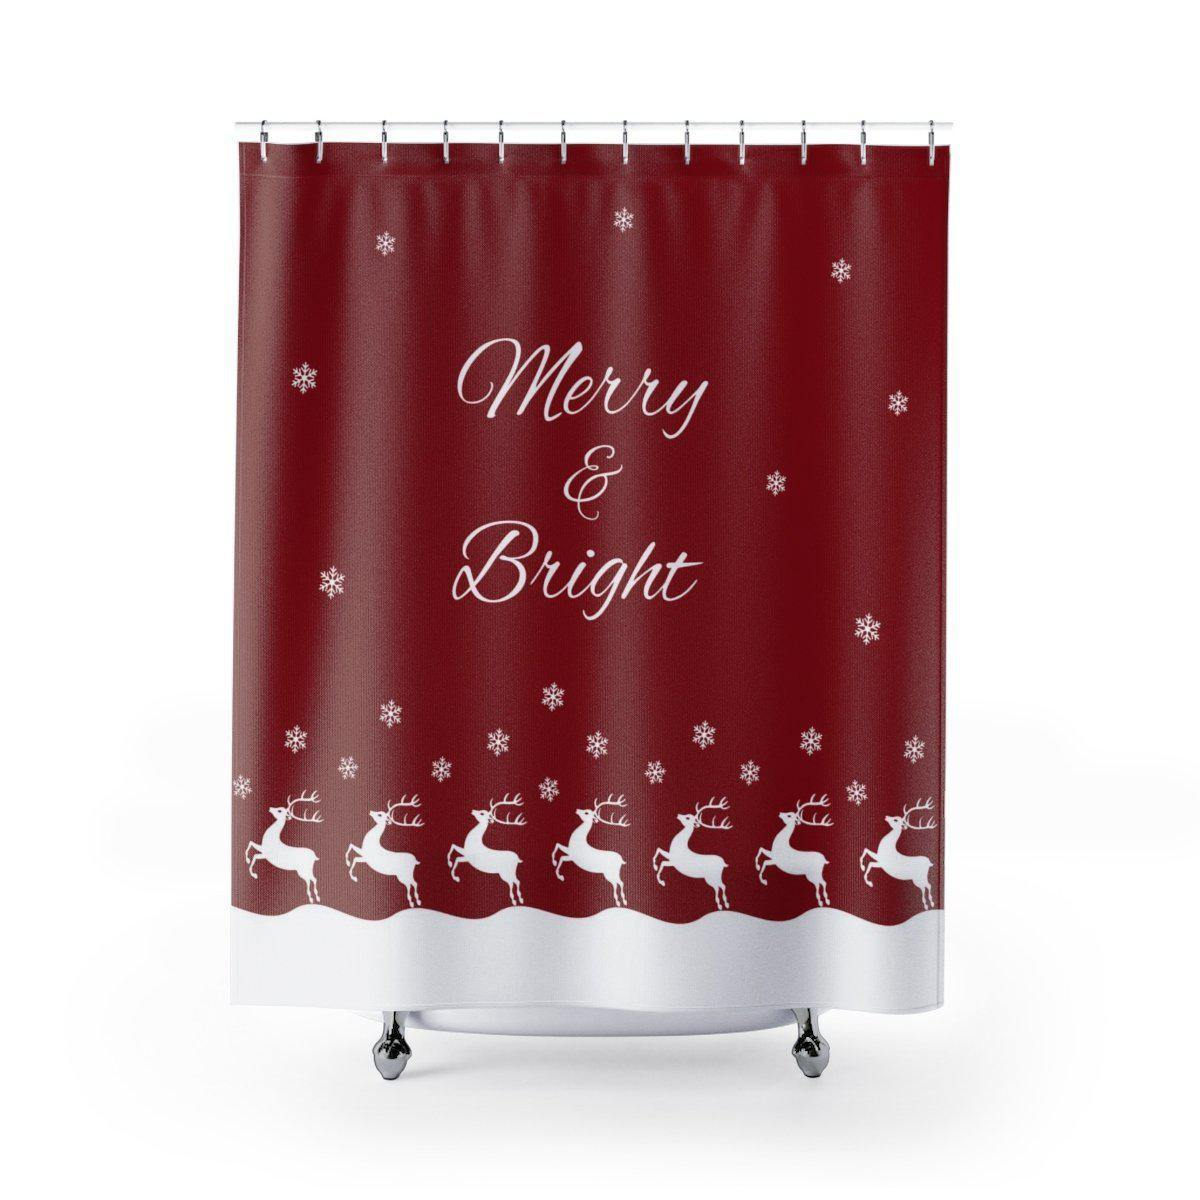 Merry & Bright Christmas Shower Curtain-W.FRANCIS